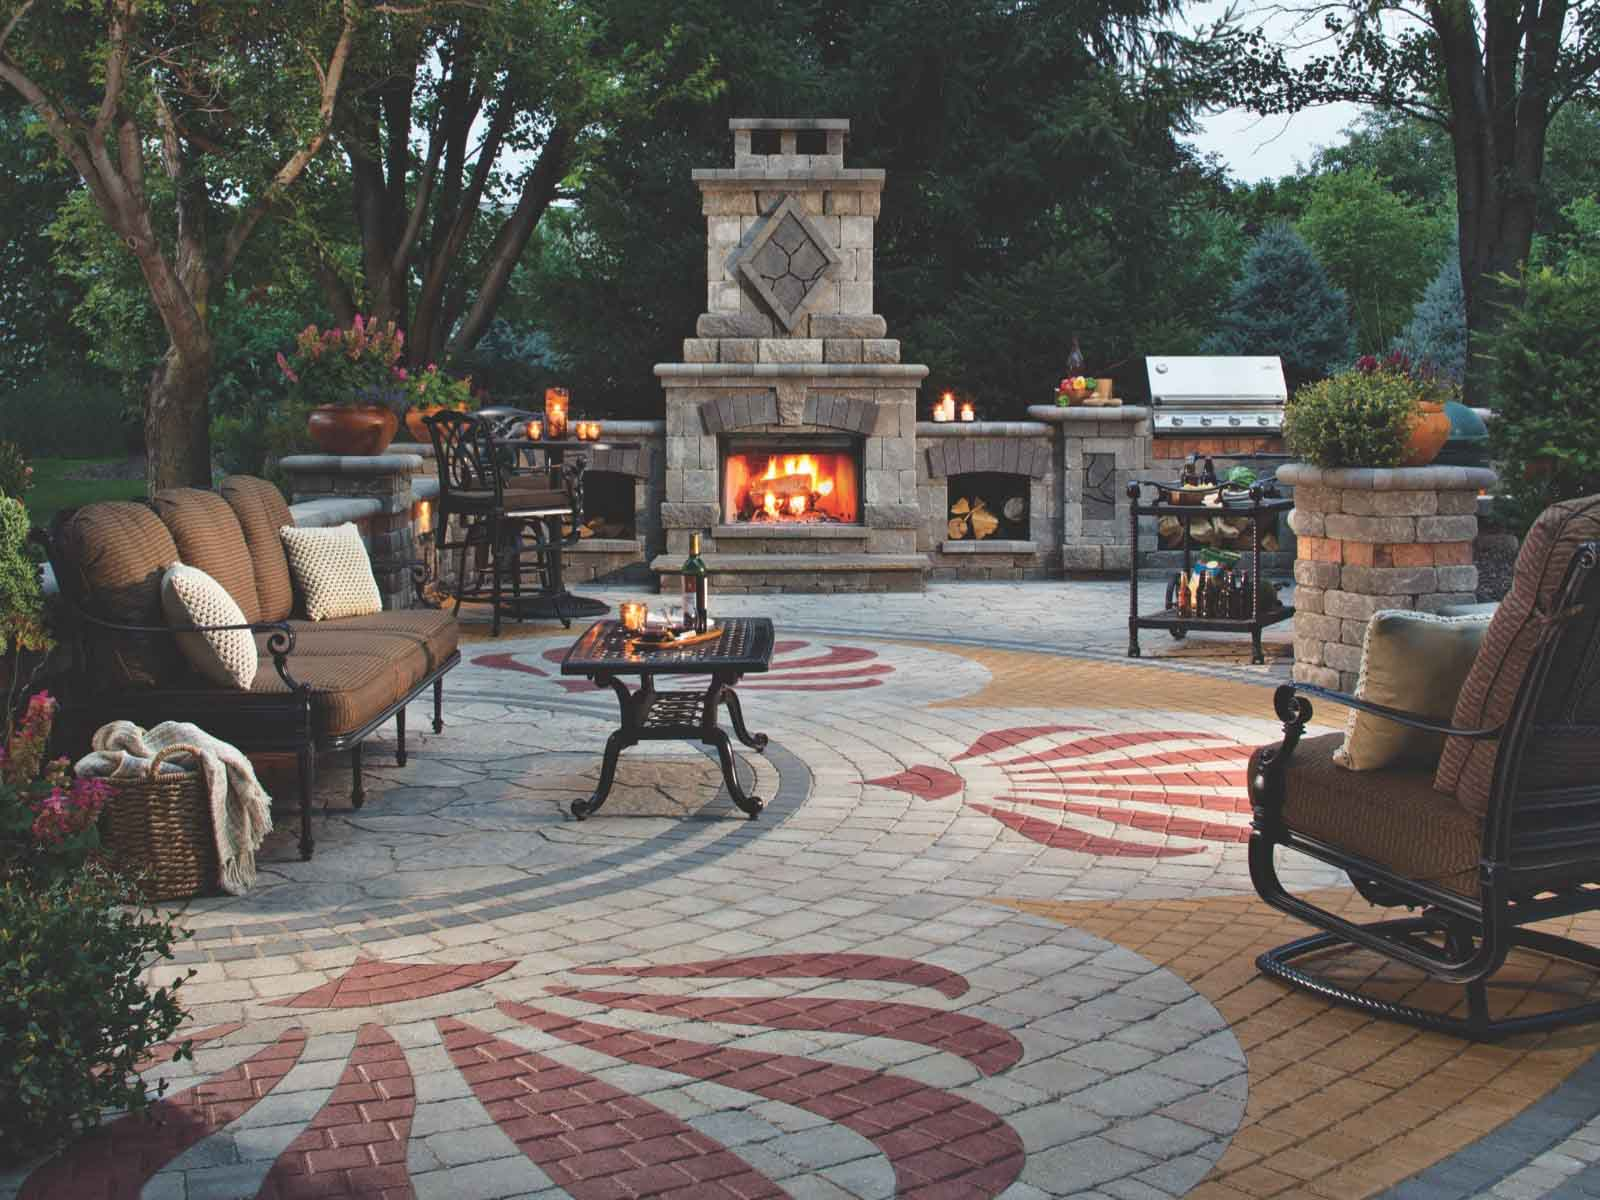 ... With Patio Pavers In The Suffolk County Area, We Are The Patio And  Terrace Contractor To Call. We Are Experienced Hardscaping And Patio  Installers.